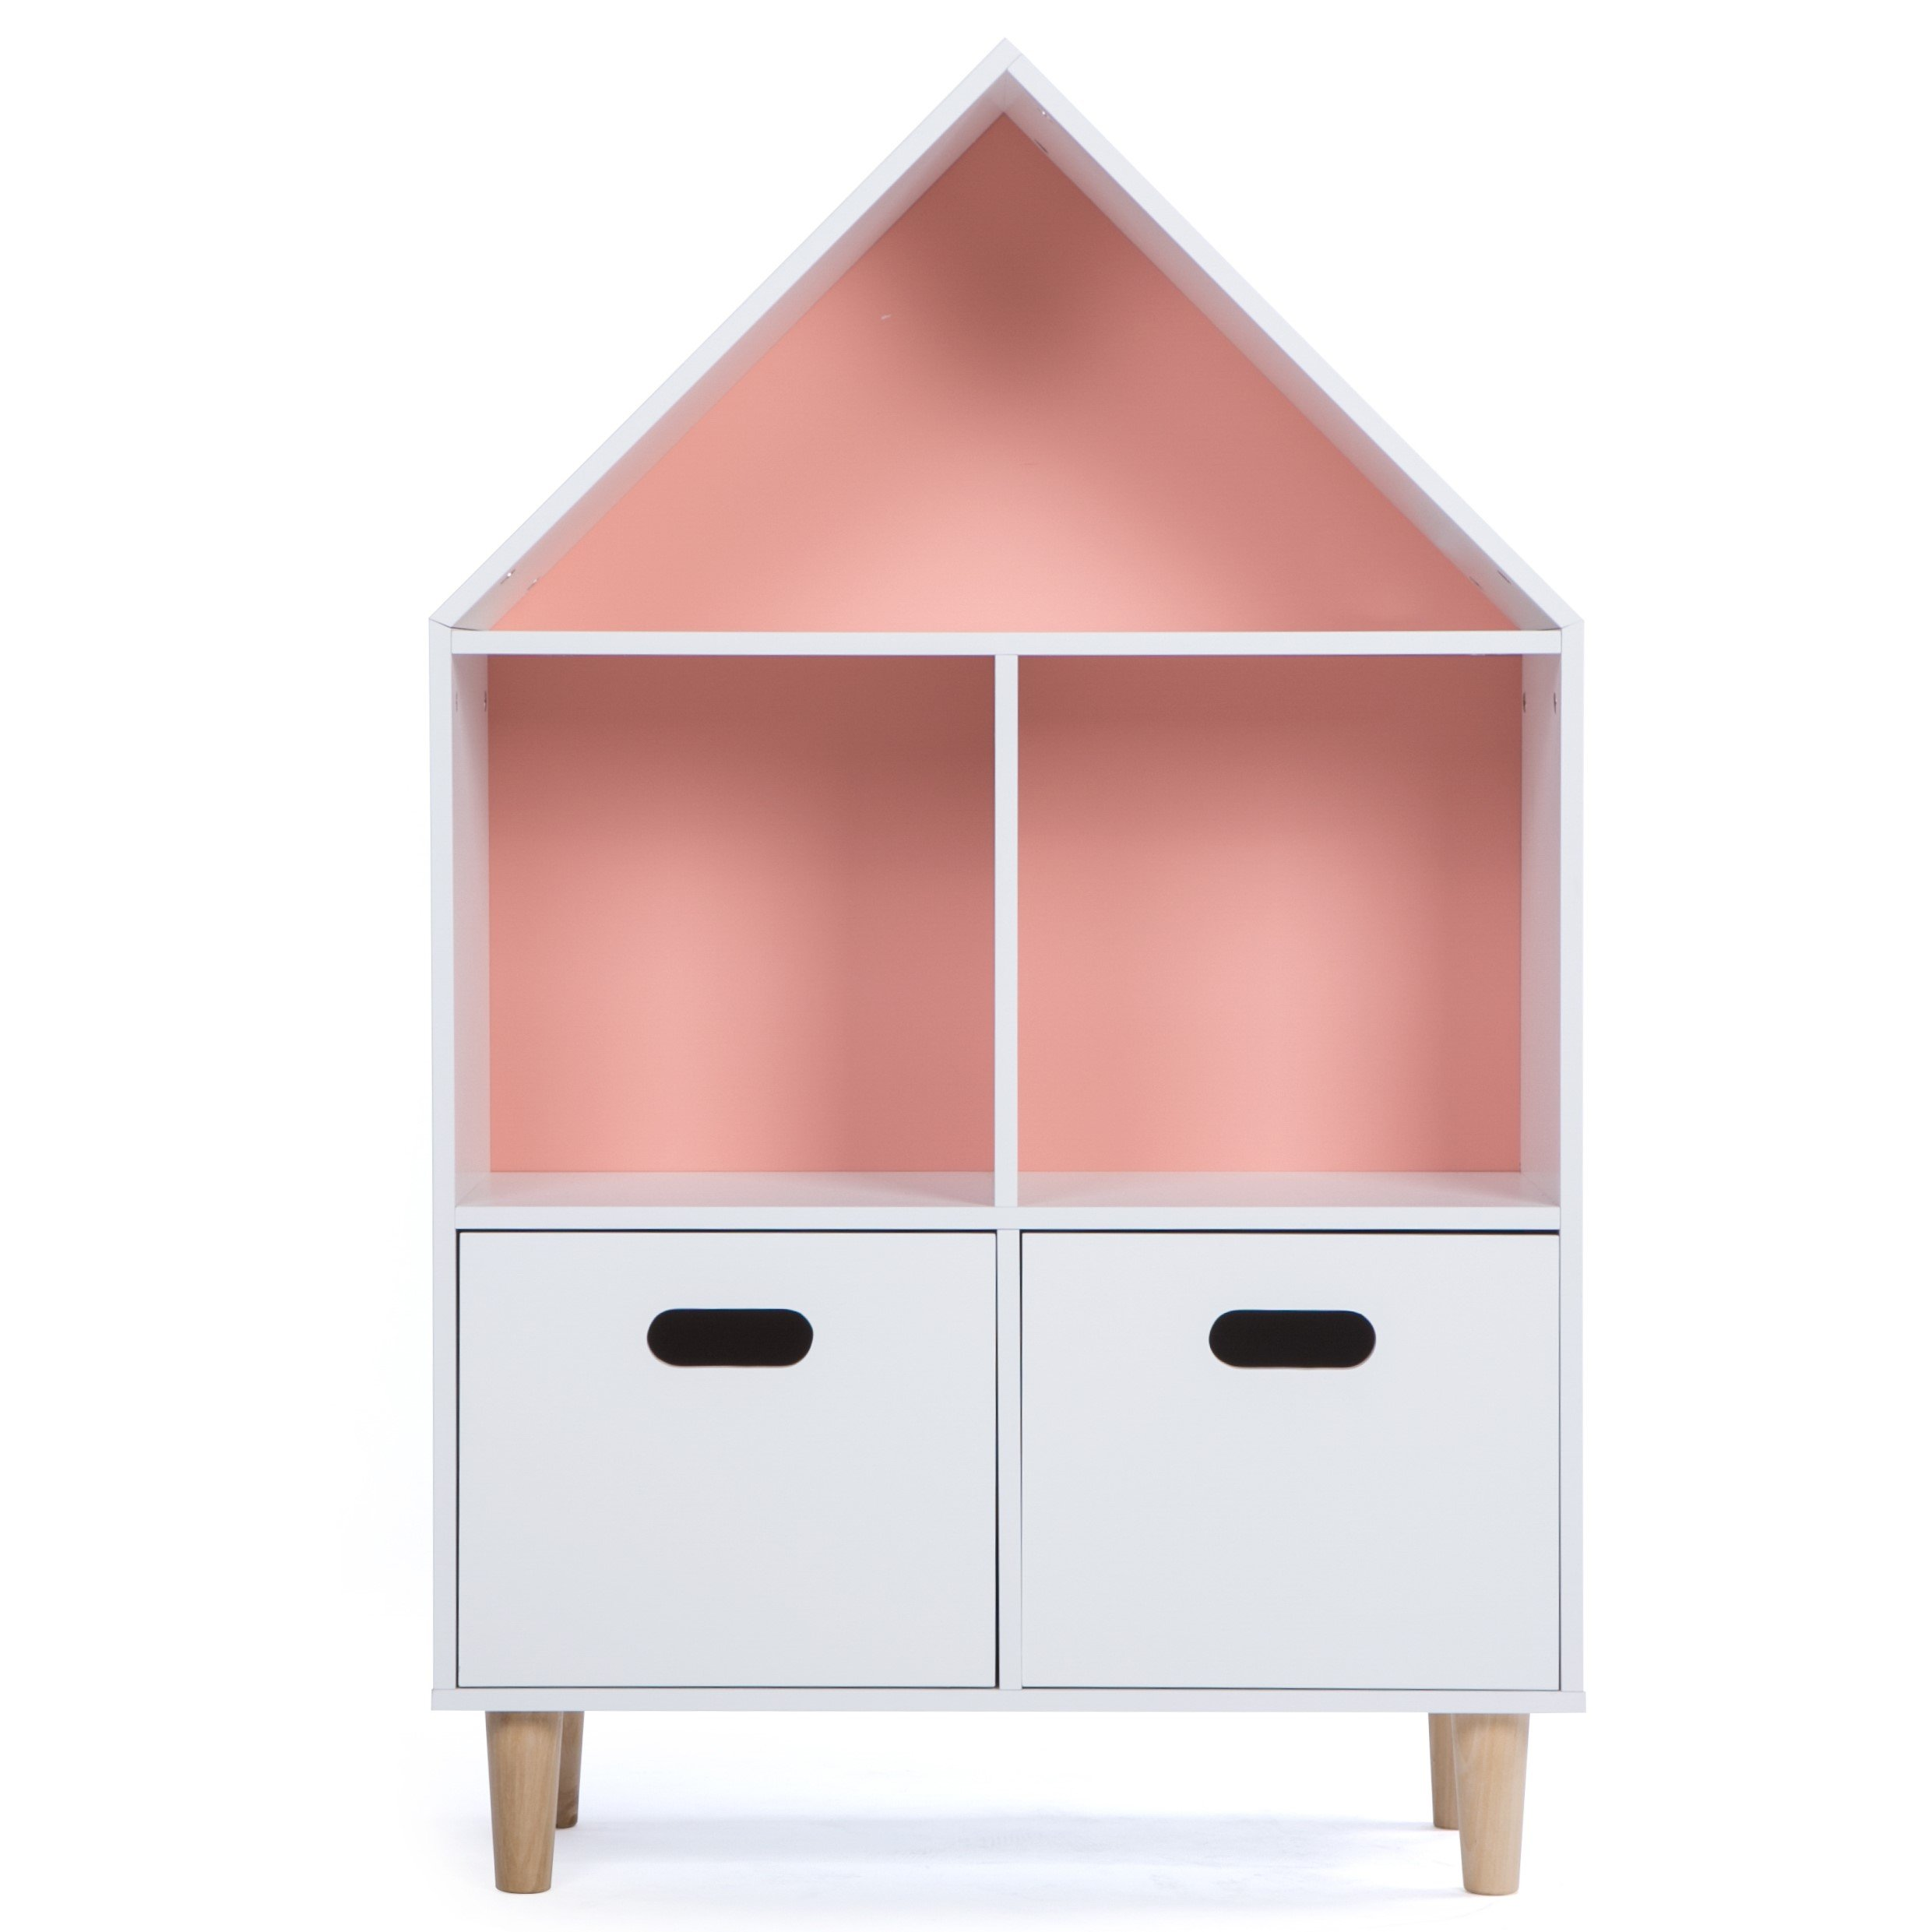 LUCKUP Kids Furniture Children Dollhouse Cottage Wood Tall sturdy and adorable Shelf Bookcase with Drawer, Two Color Choice(Sky Blue or Baby Pink) (40''Hx25''Lx12''W)